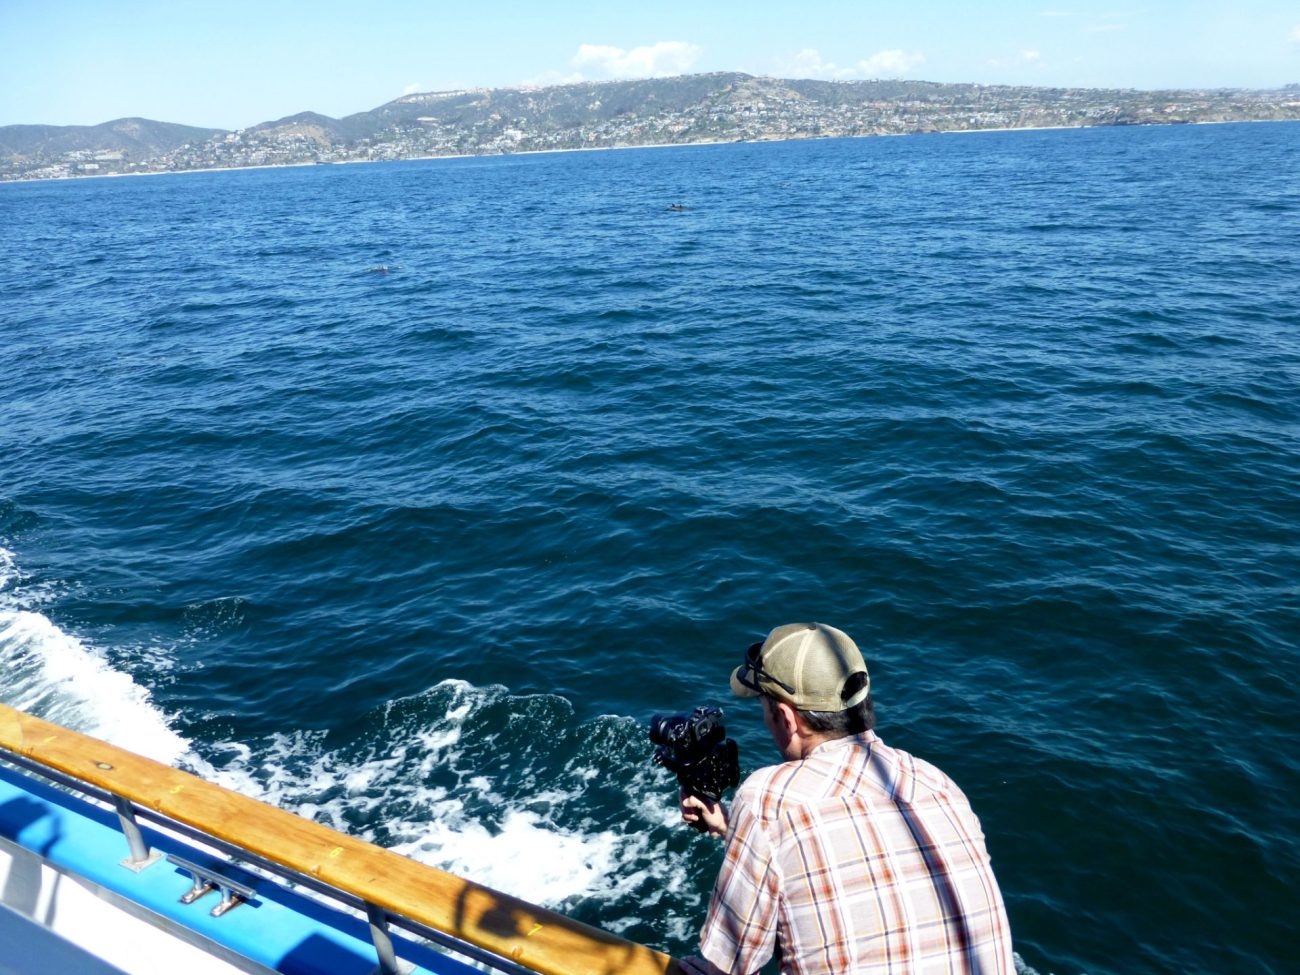 Filming while whale watching for gray whales in the Pacific Ocean.